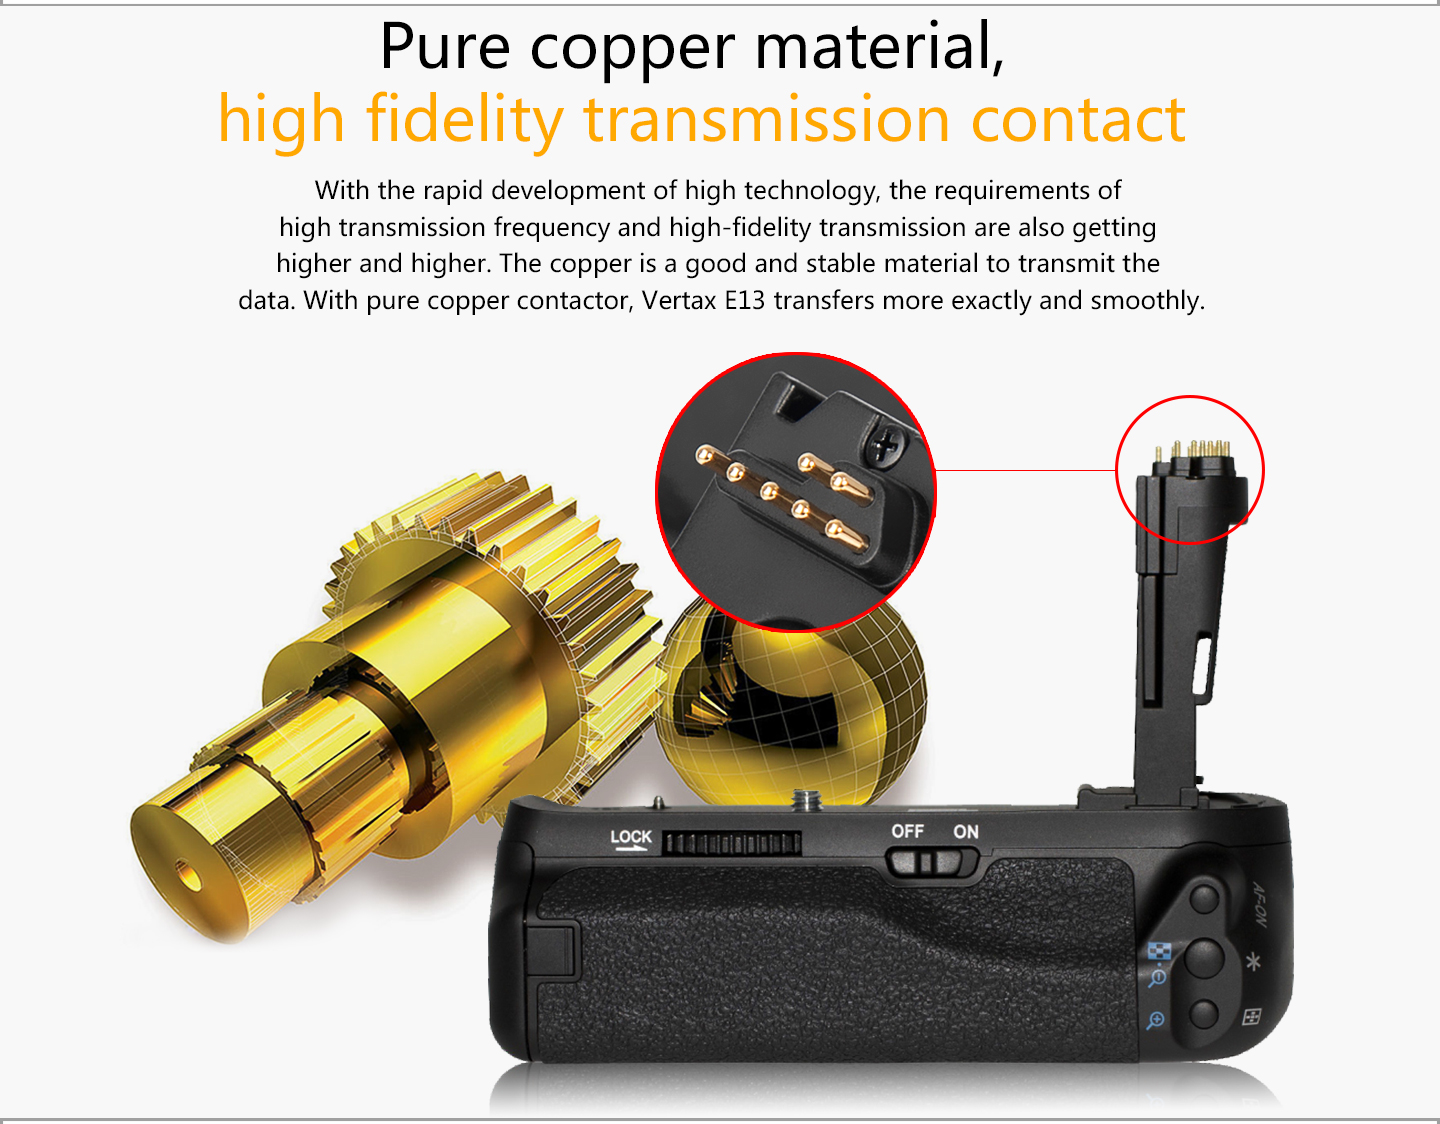 Pure copper material, high fidelity transmission contact